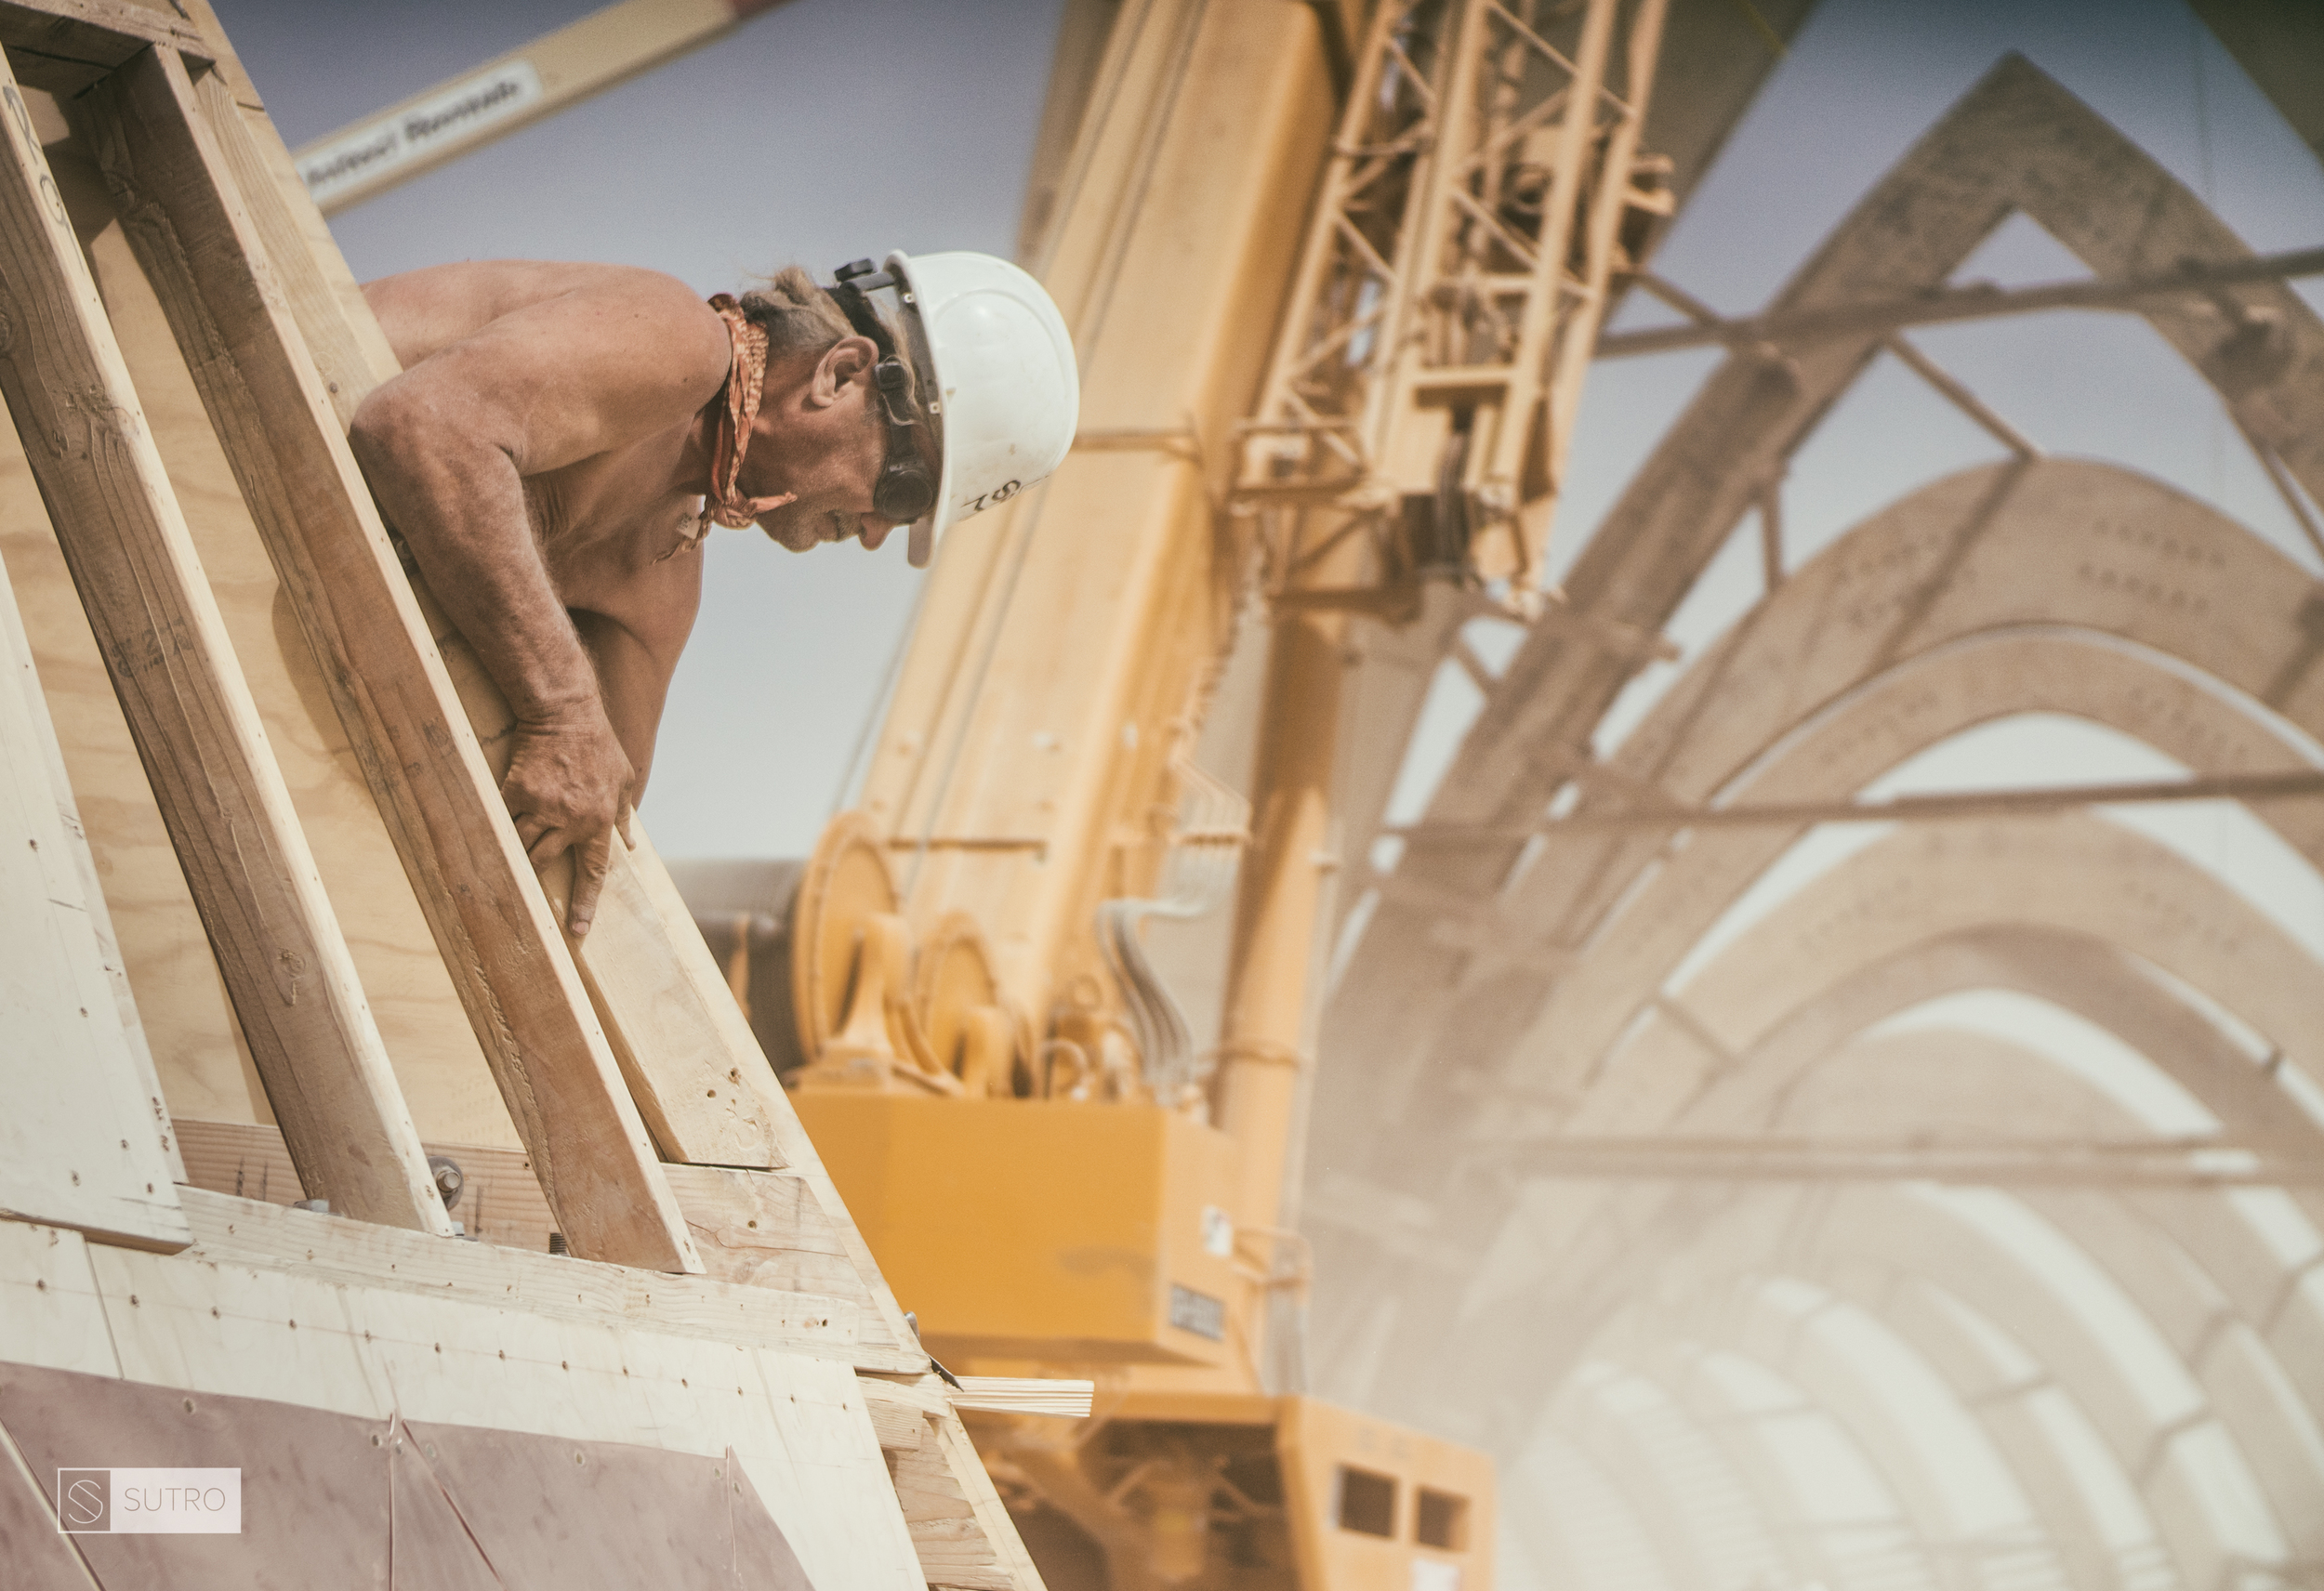 Jan Yoder, aka. Spyreman, is seen here working on the top piece of the Temple, with the rest of the structure disappearing through the dust in the background.